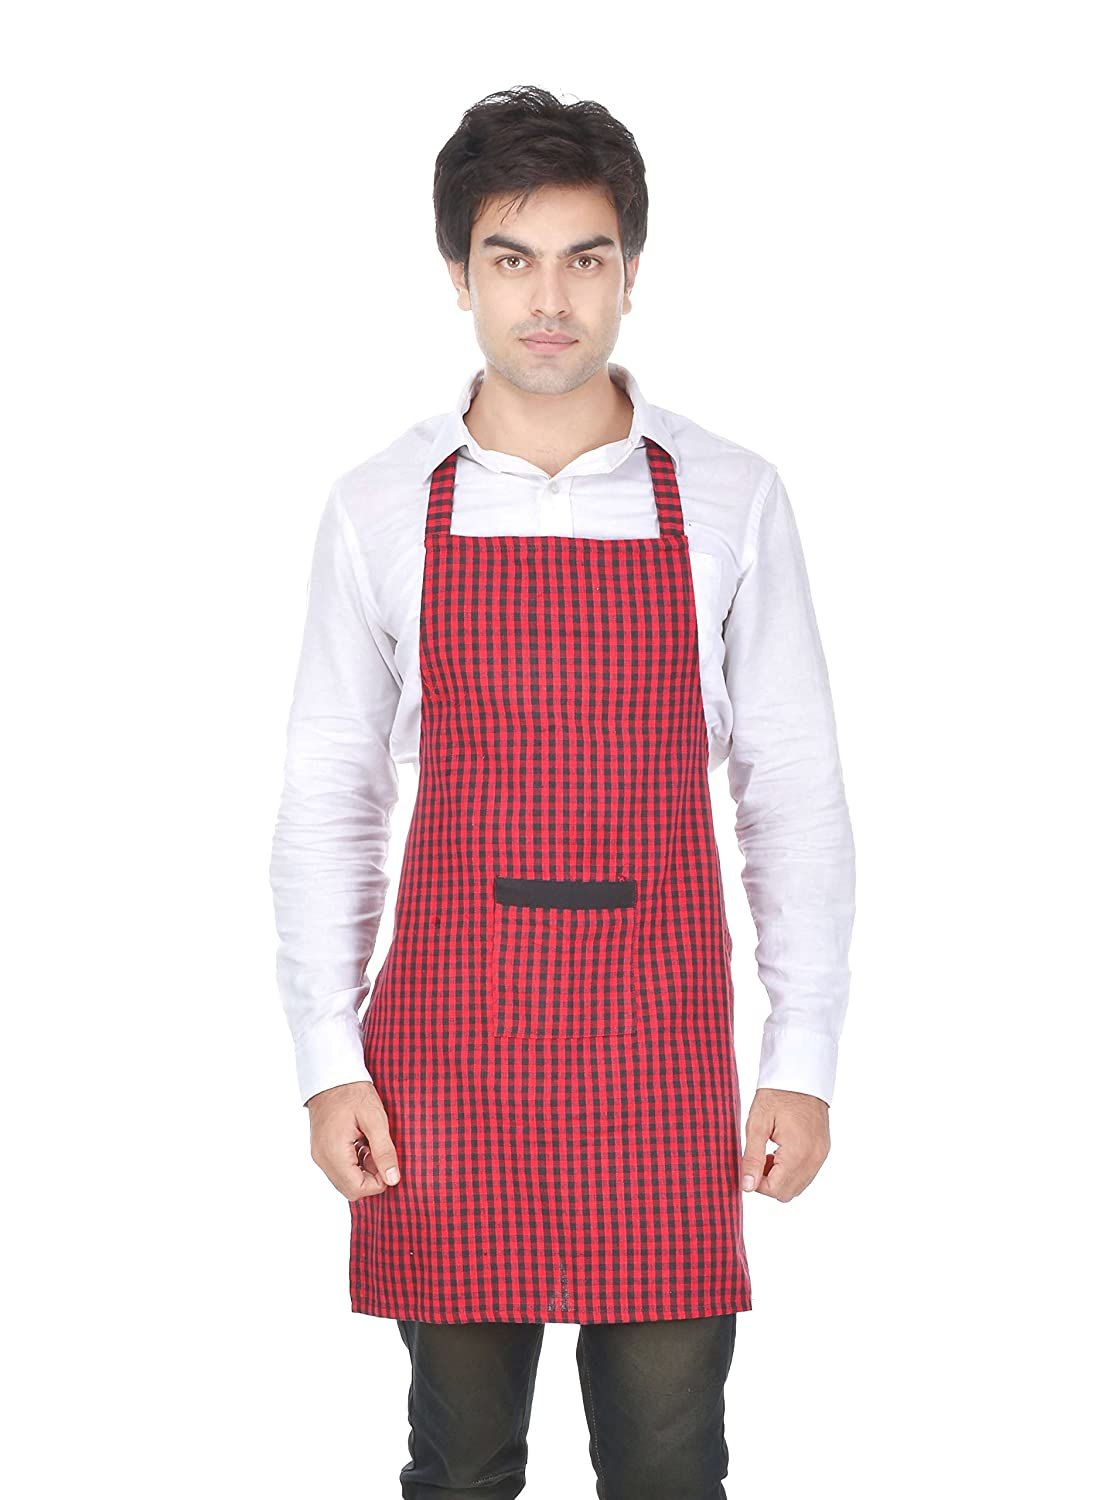 7ee968bfcd6 Switchon Red And Black Chef s Apron With Cap For Home Hotel And  Restaurants  Amazon.in  Amazon.in